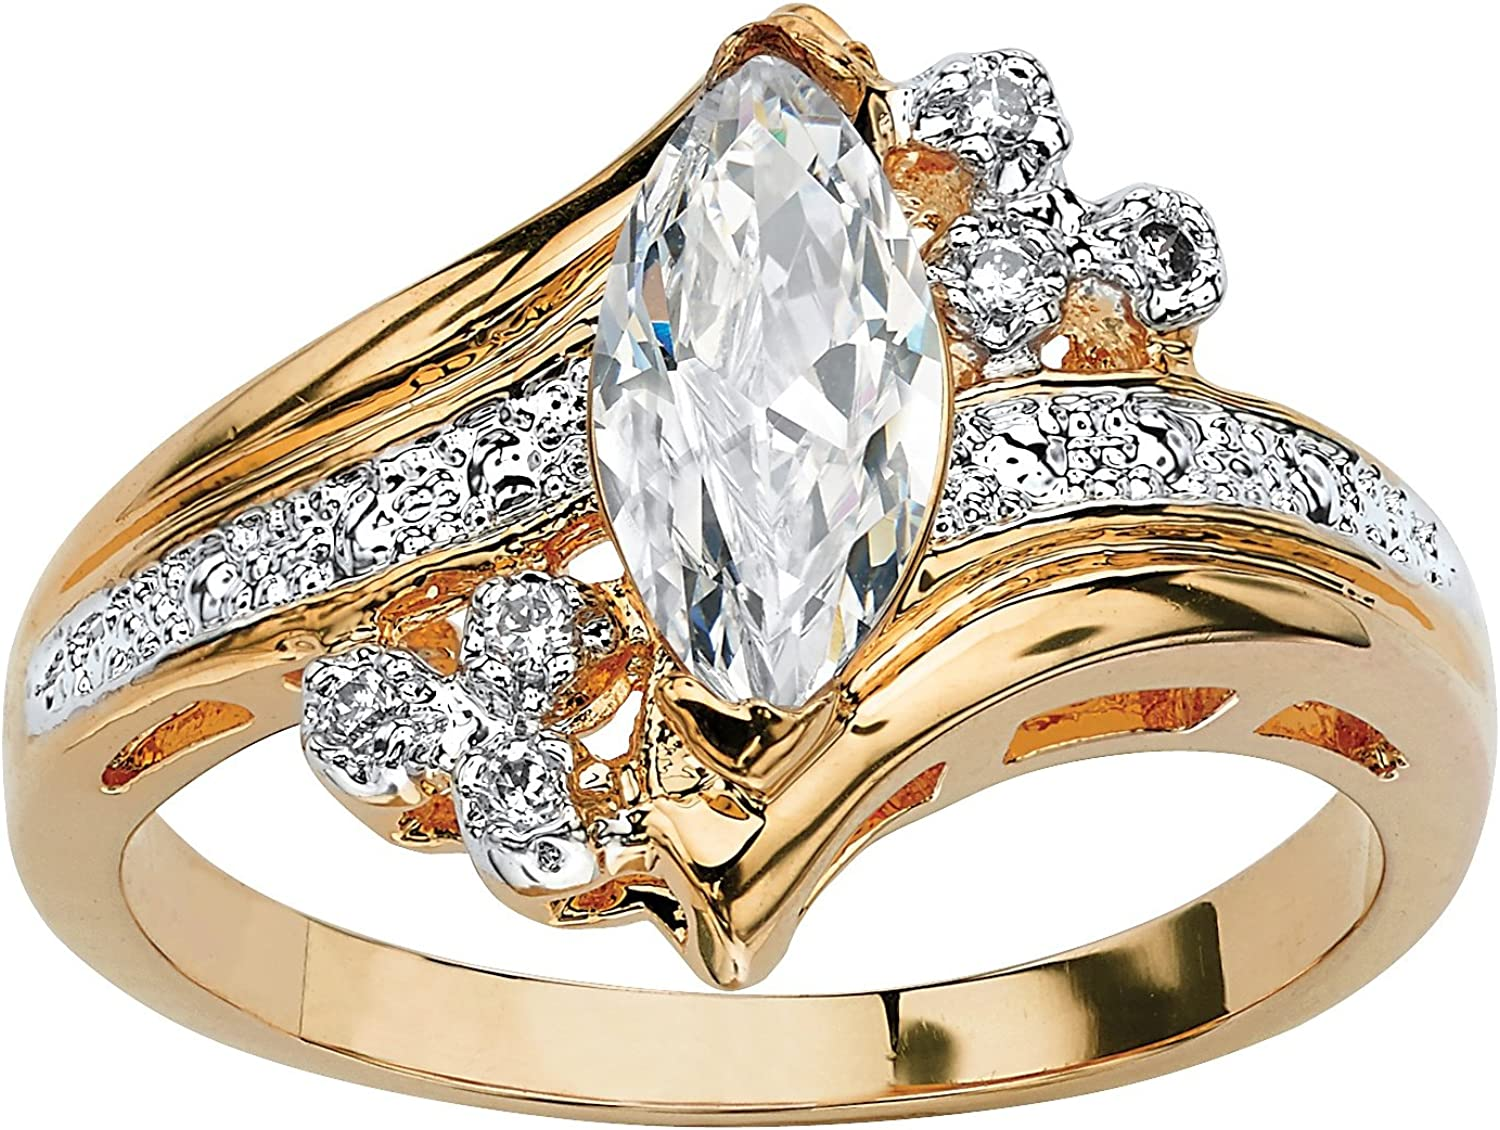 Palm Beach Jewelry 14K Yellow Gold Plated Marquise Cut Cubic Zirconia Bypass Engagement Ring